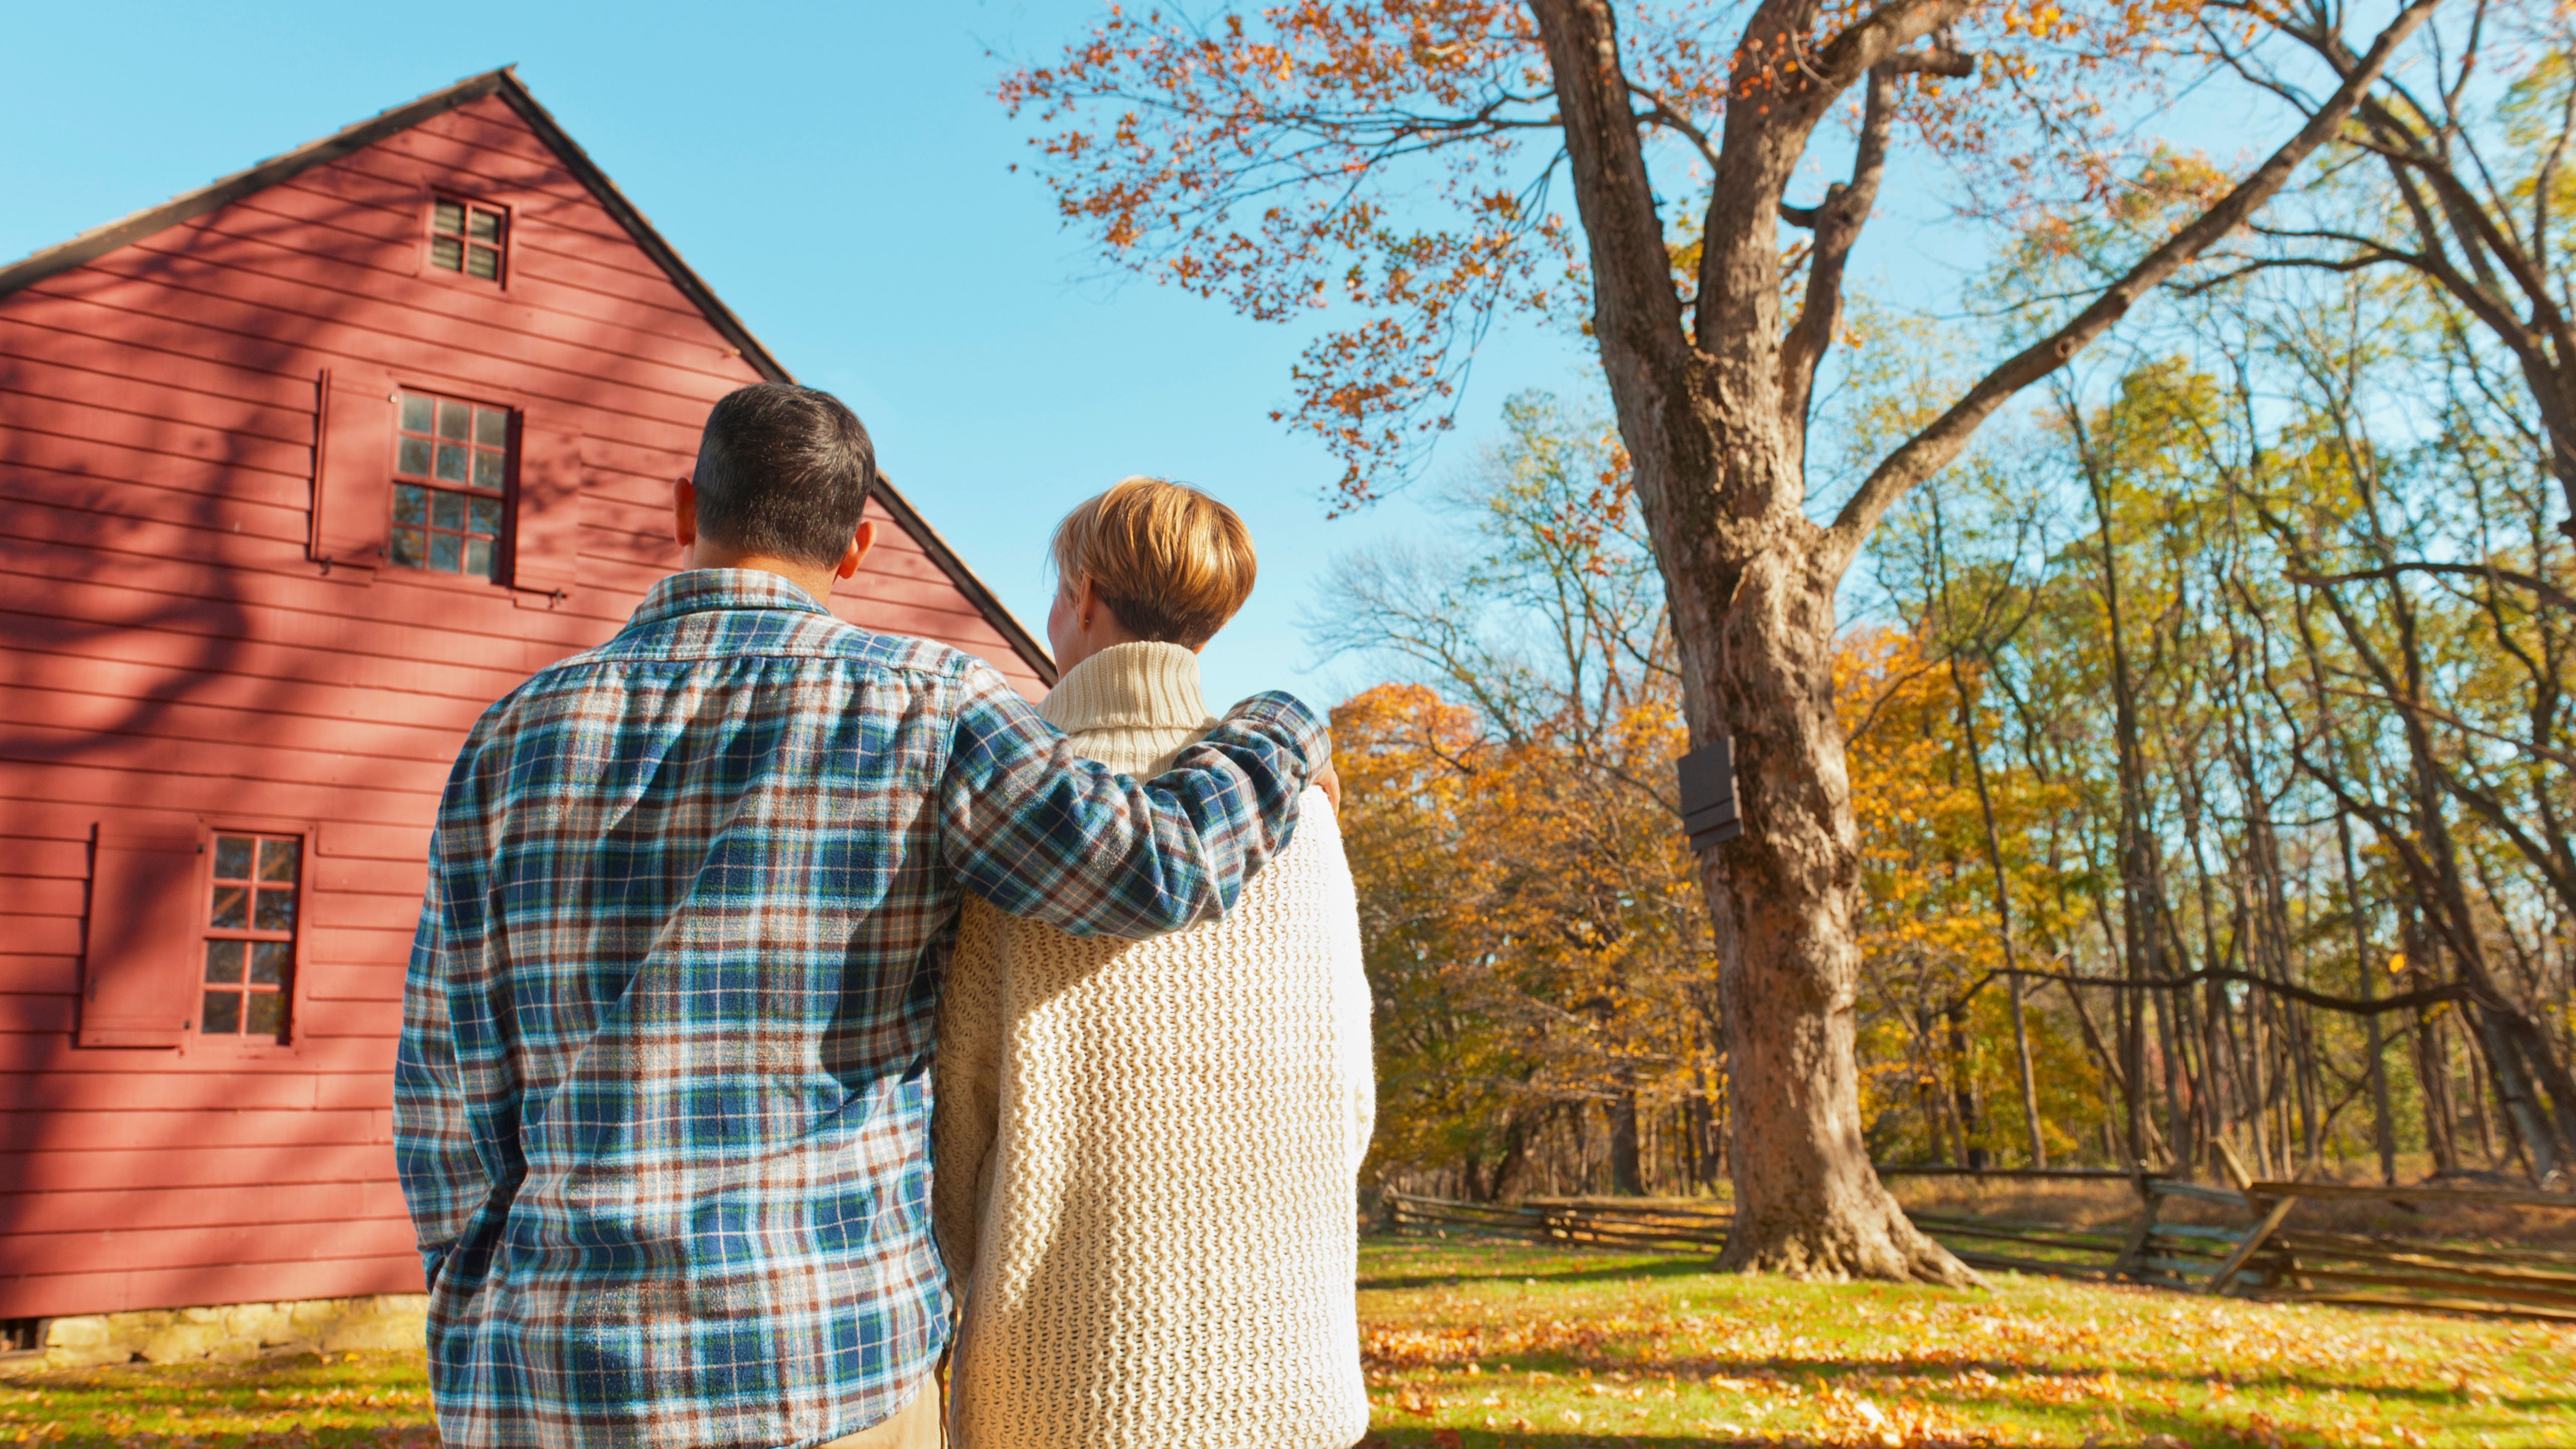 A couple looking at a home on their property